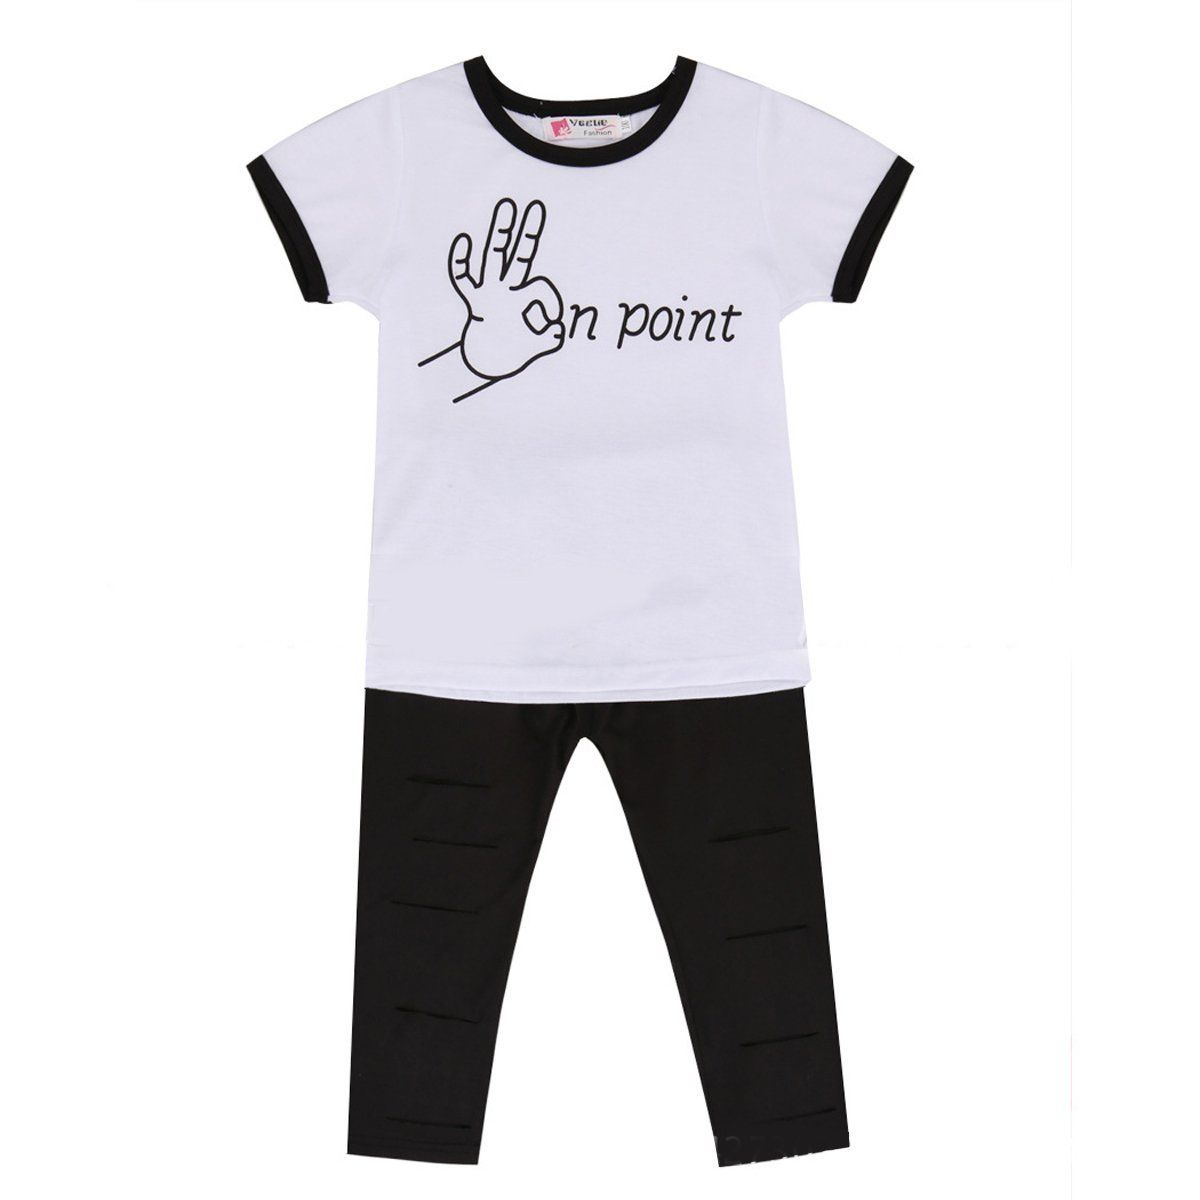 c66b7f4728c 2017 summer Two pcs Toddler Kid Baby Girls Outfit White Character T shirt  Tops+black Holes Long Pants Leggings Clothes Set-in Clothing Sets from  Mother ...